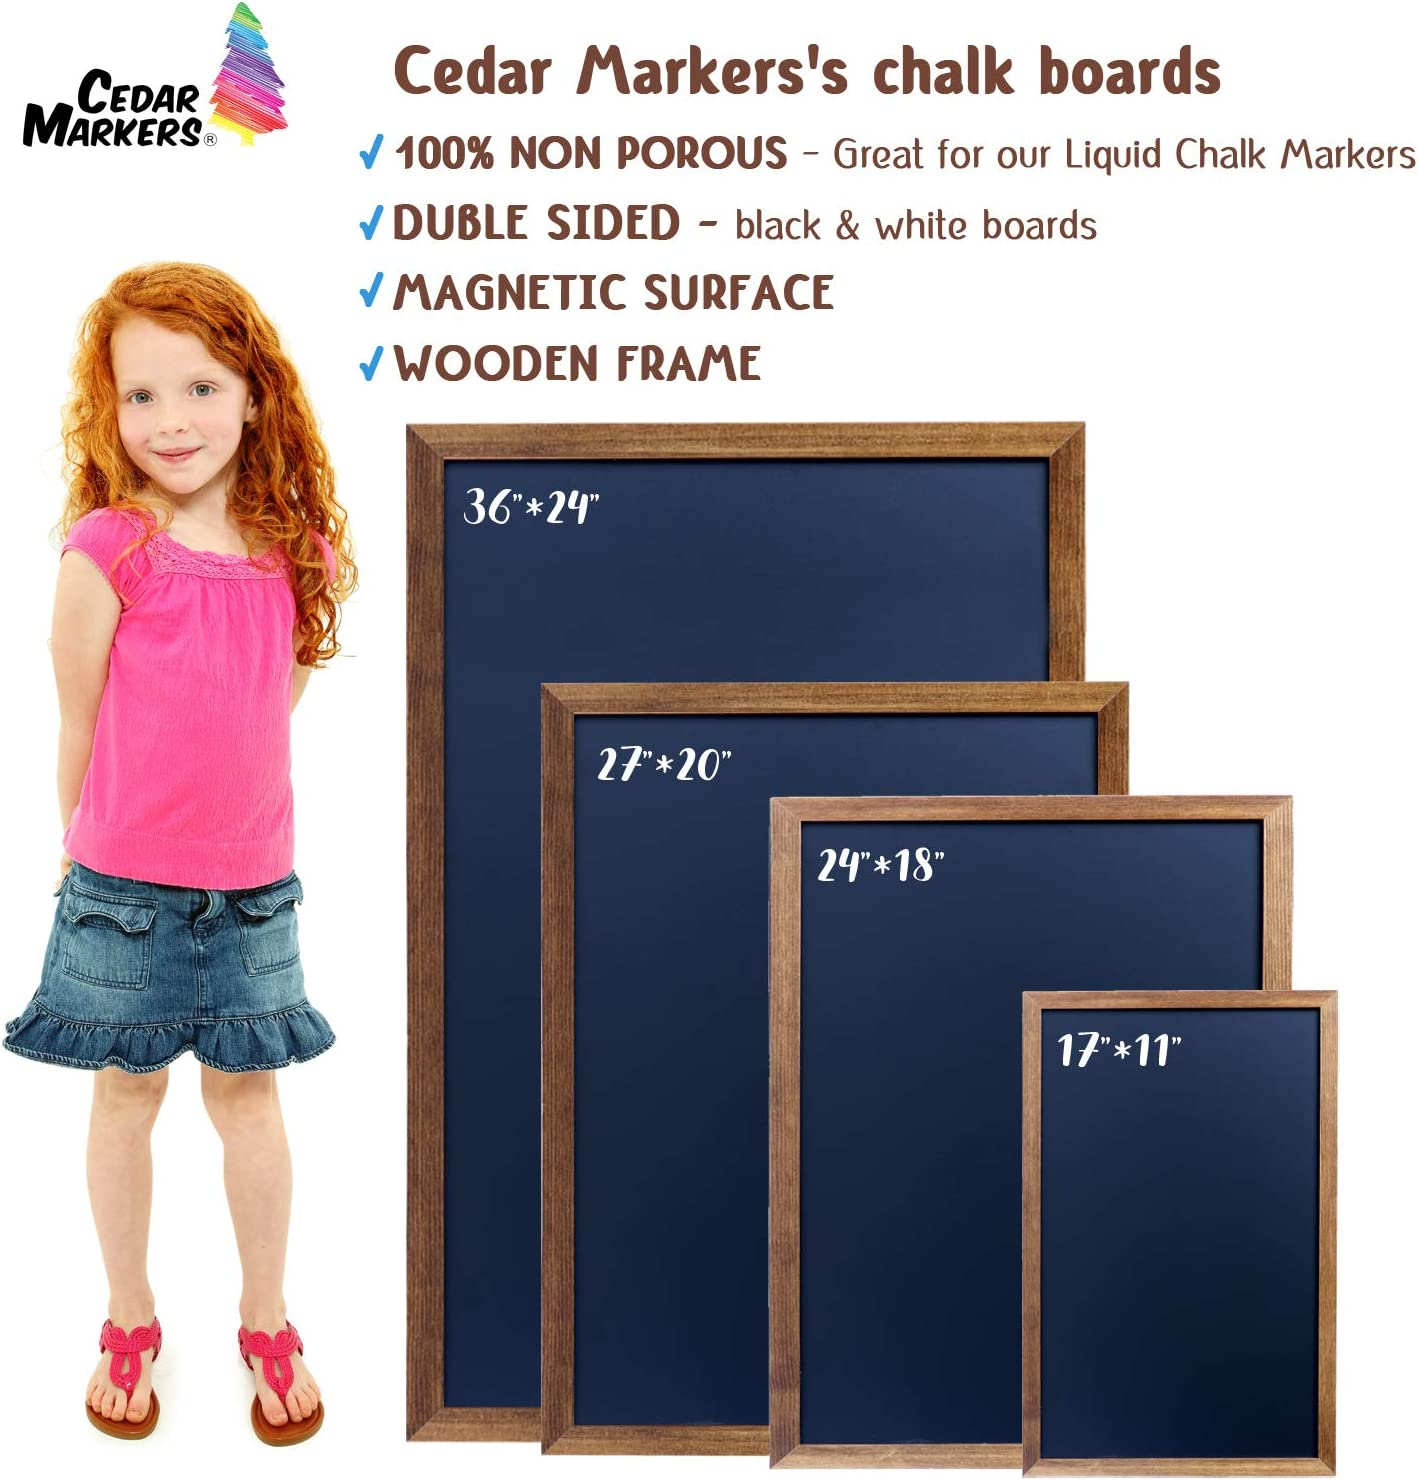 """Cedar Markers 27""""x20"""" Framed Chalkboard Sign. 100% Non-Porous Erasable Blackboard and Whiteboard. Chalk Board for Chalk Markers. Homeschool Magnet Board Decorative Big Chalkboard for Every Event.: Home & Kitchen"""